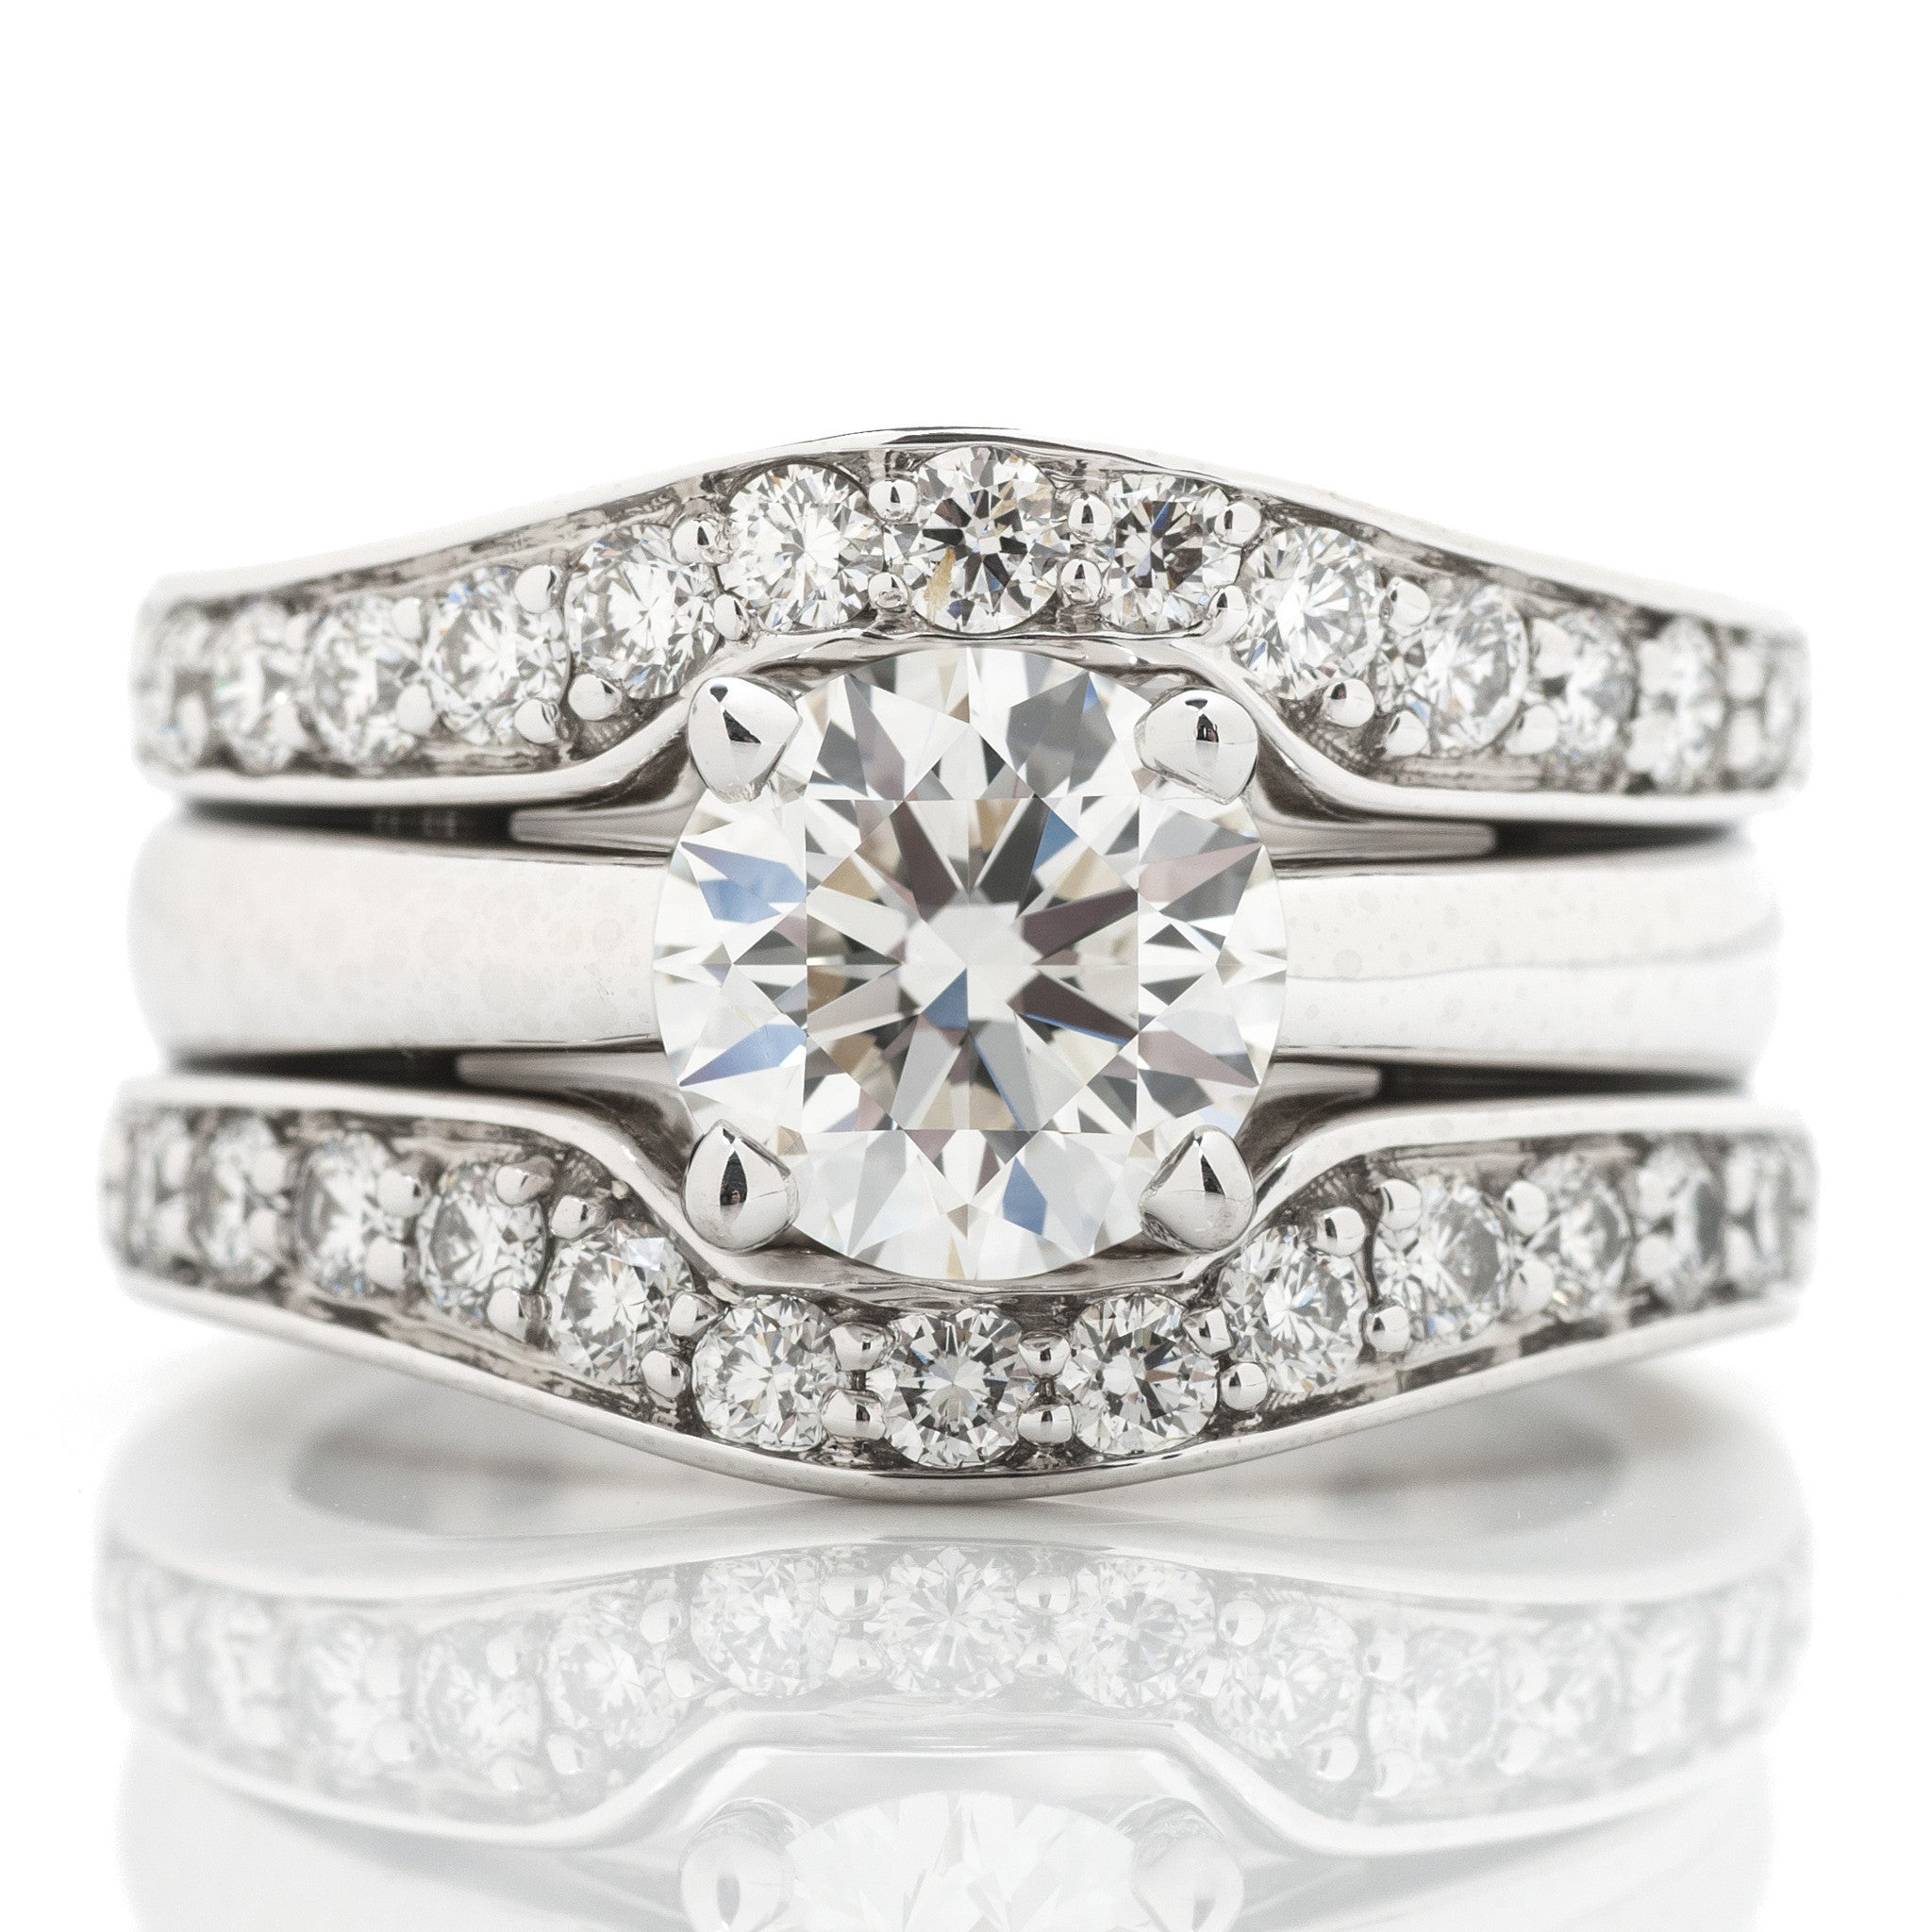 Platinum Statement Engagement Ring with Diamond Border